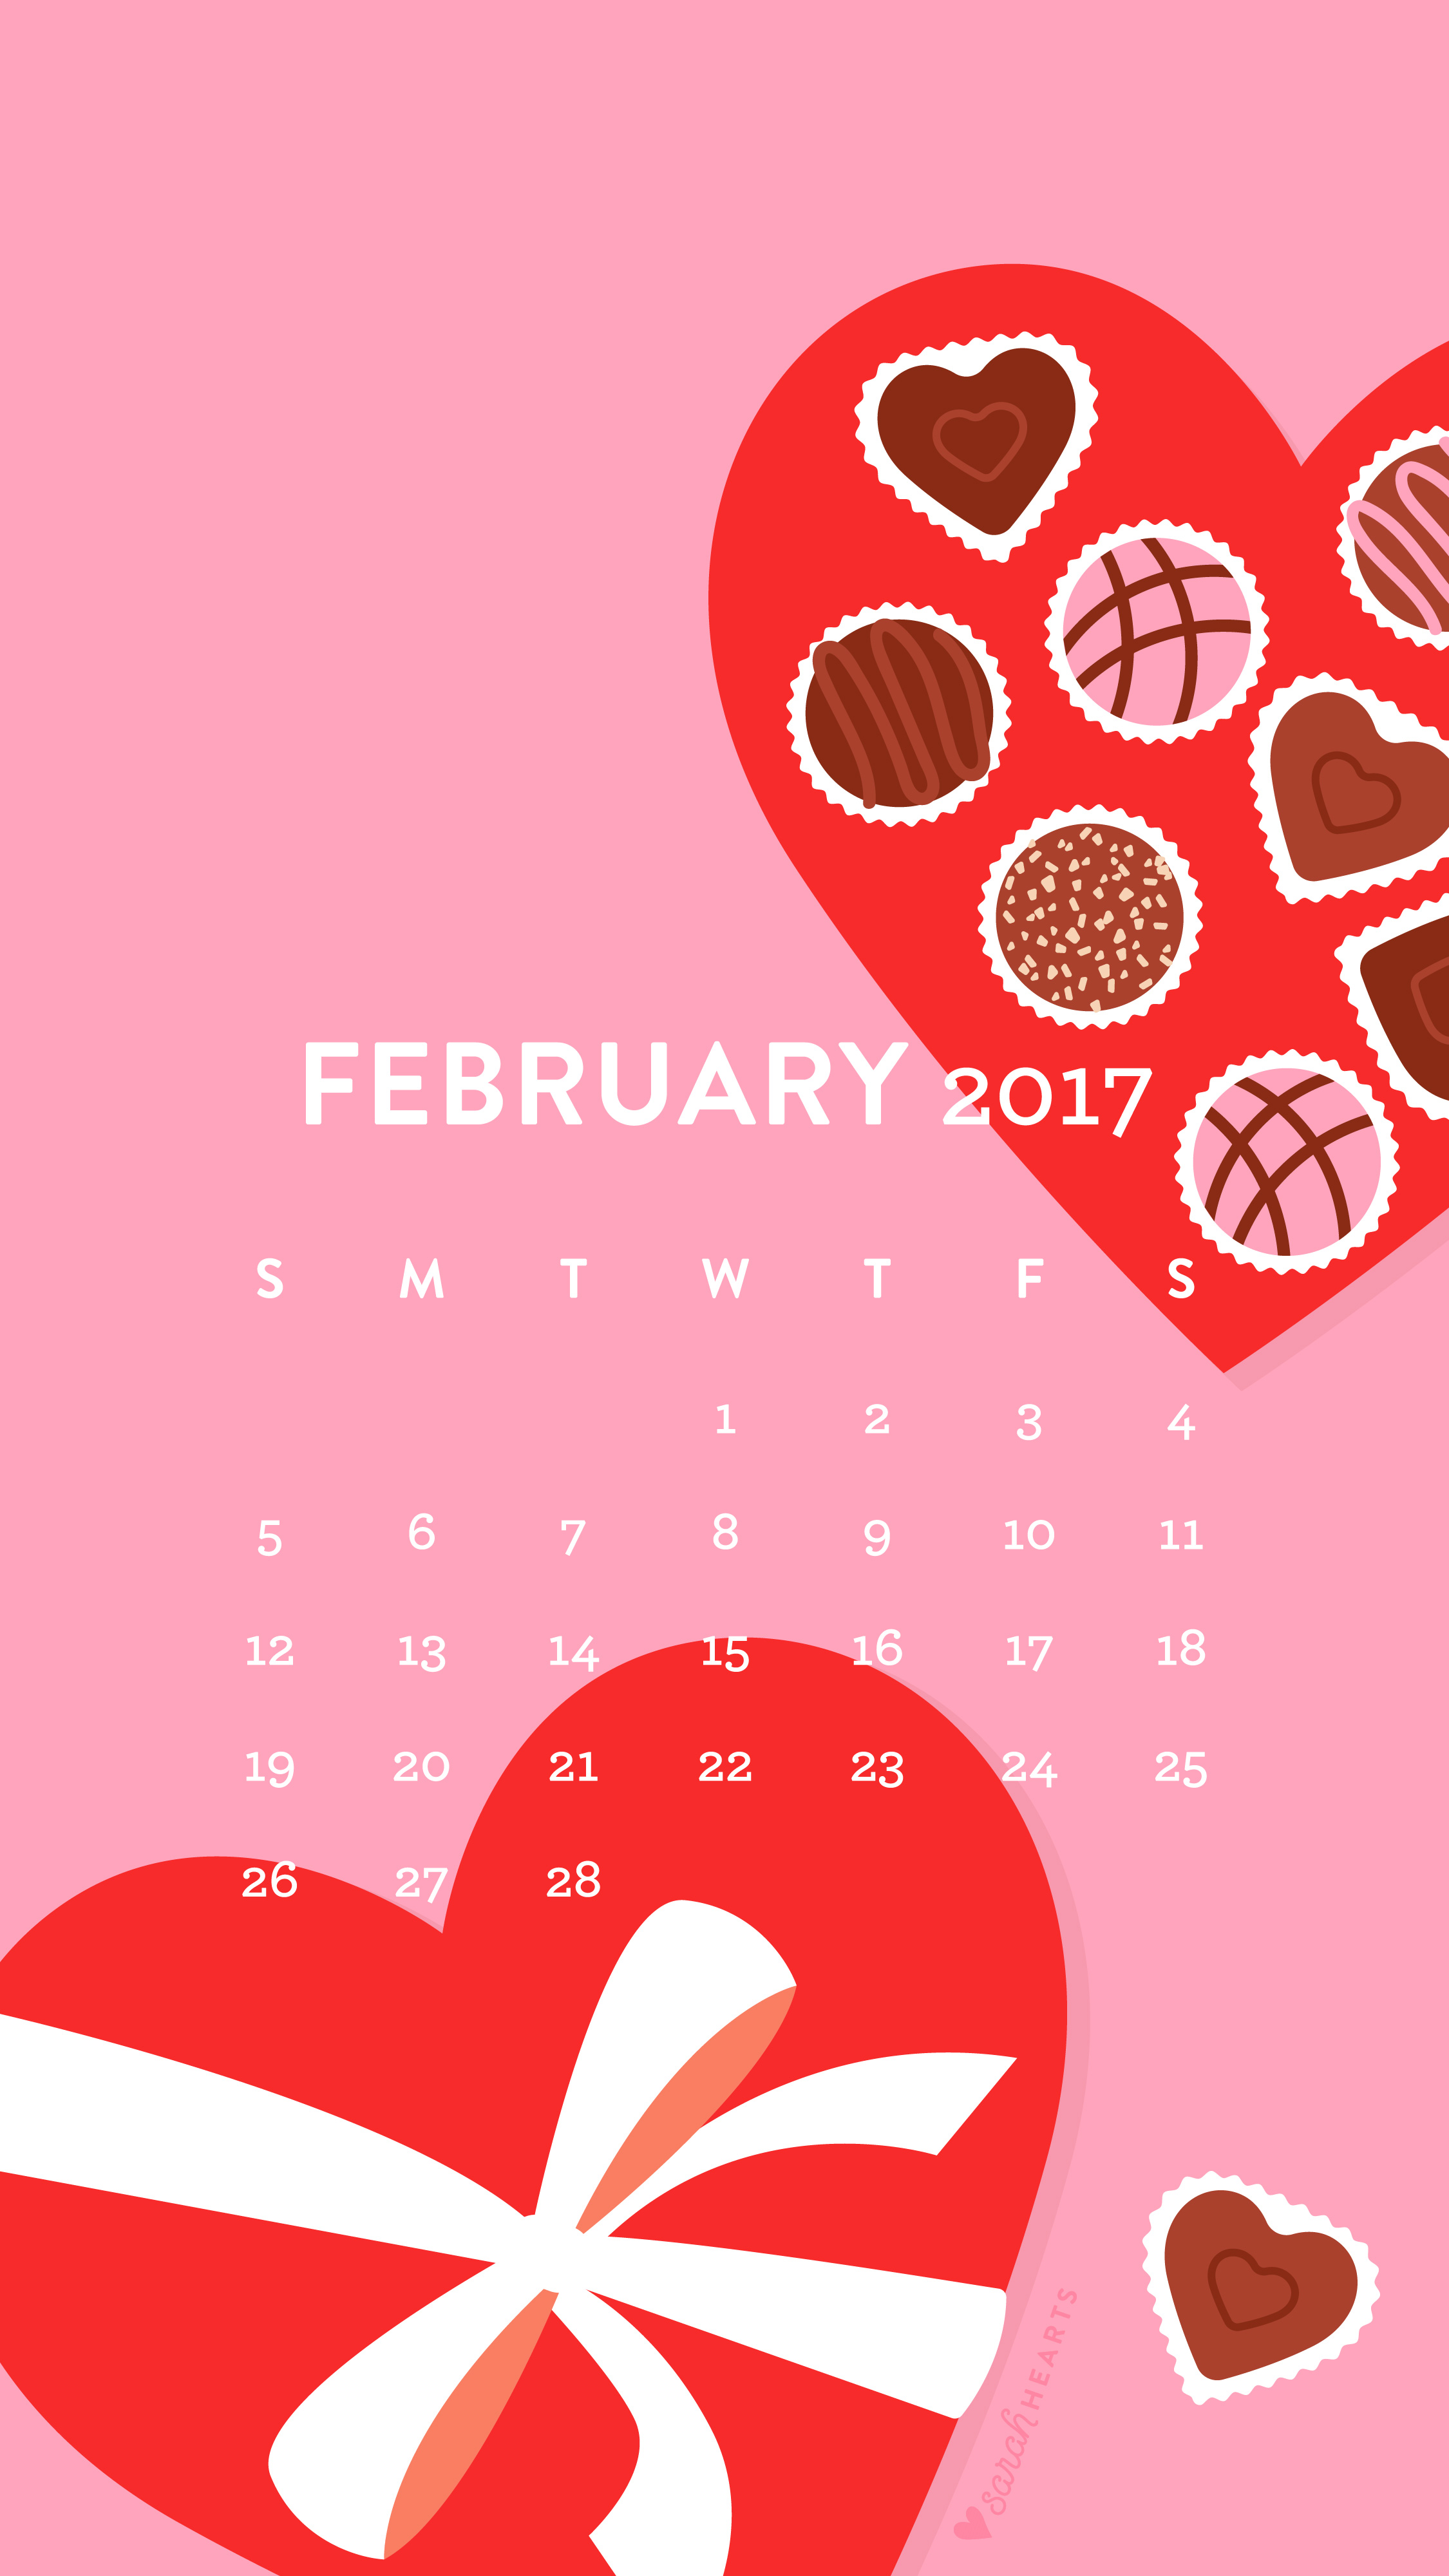 Free Apple Wallpapers For Iphone Valentines February 2017 Calendar Wallpaper Sarah Hearts